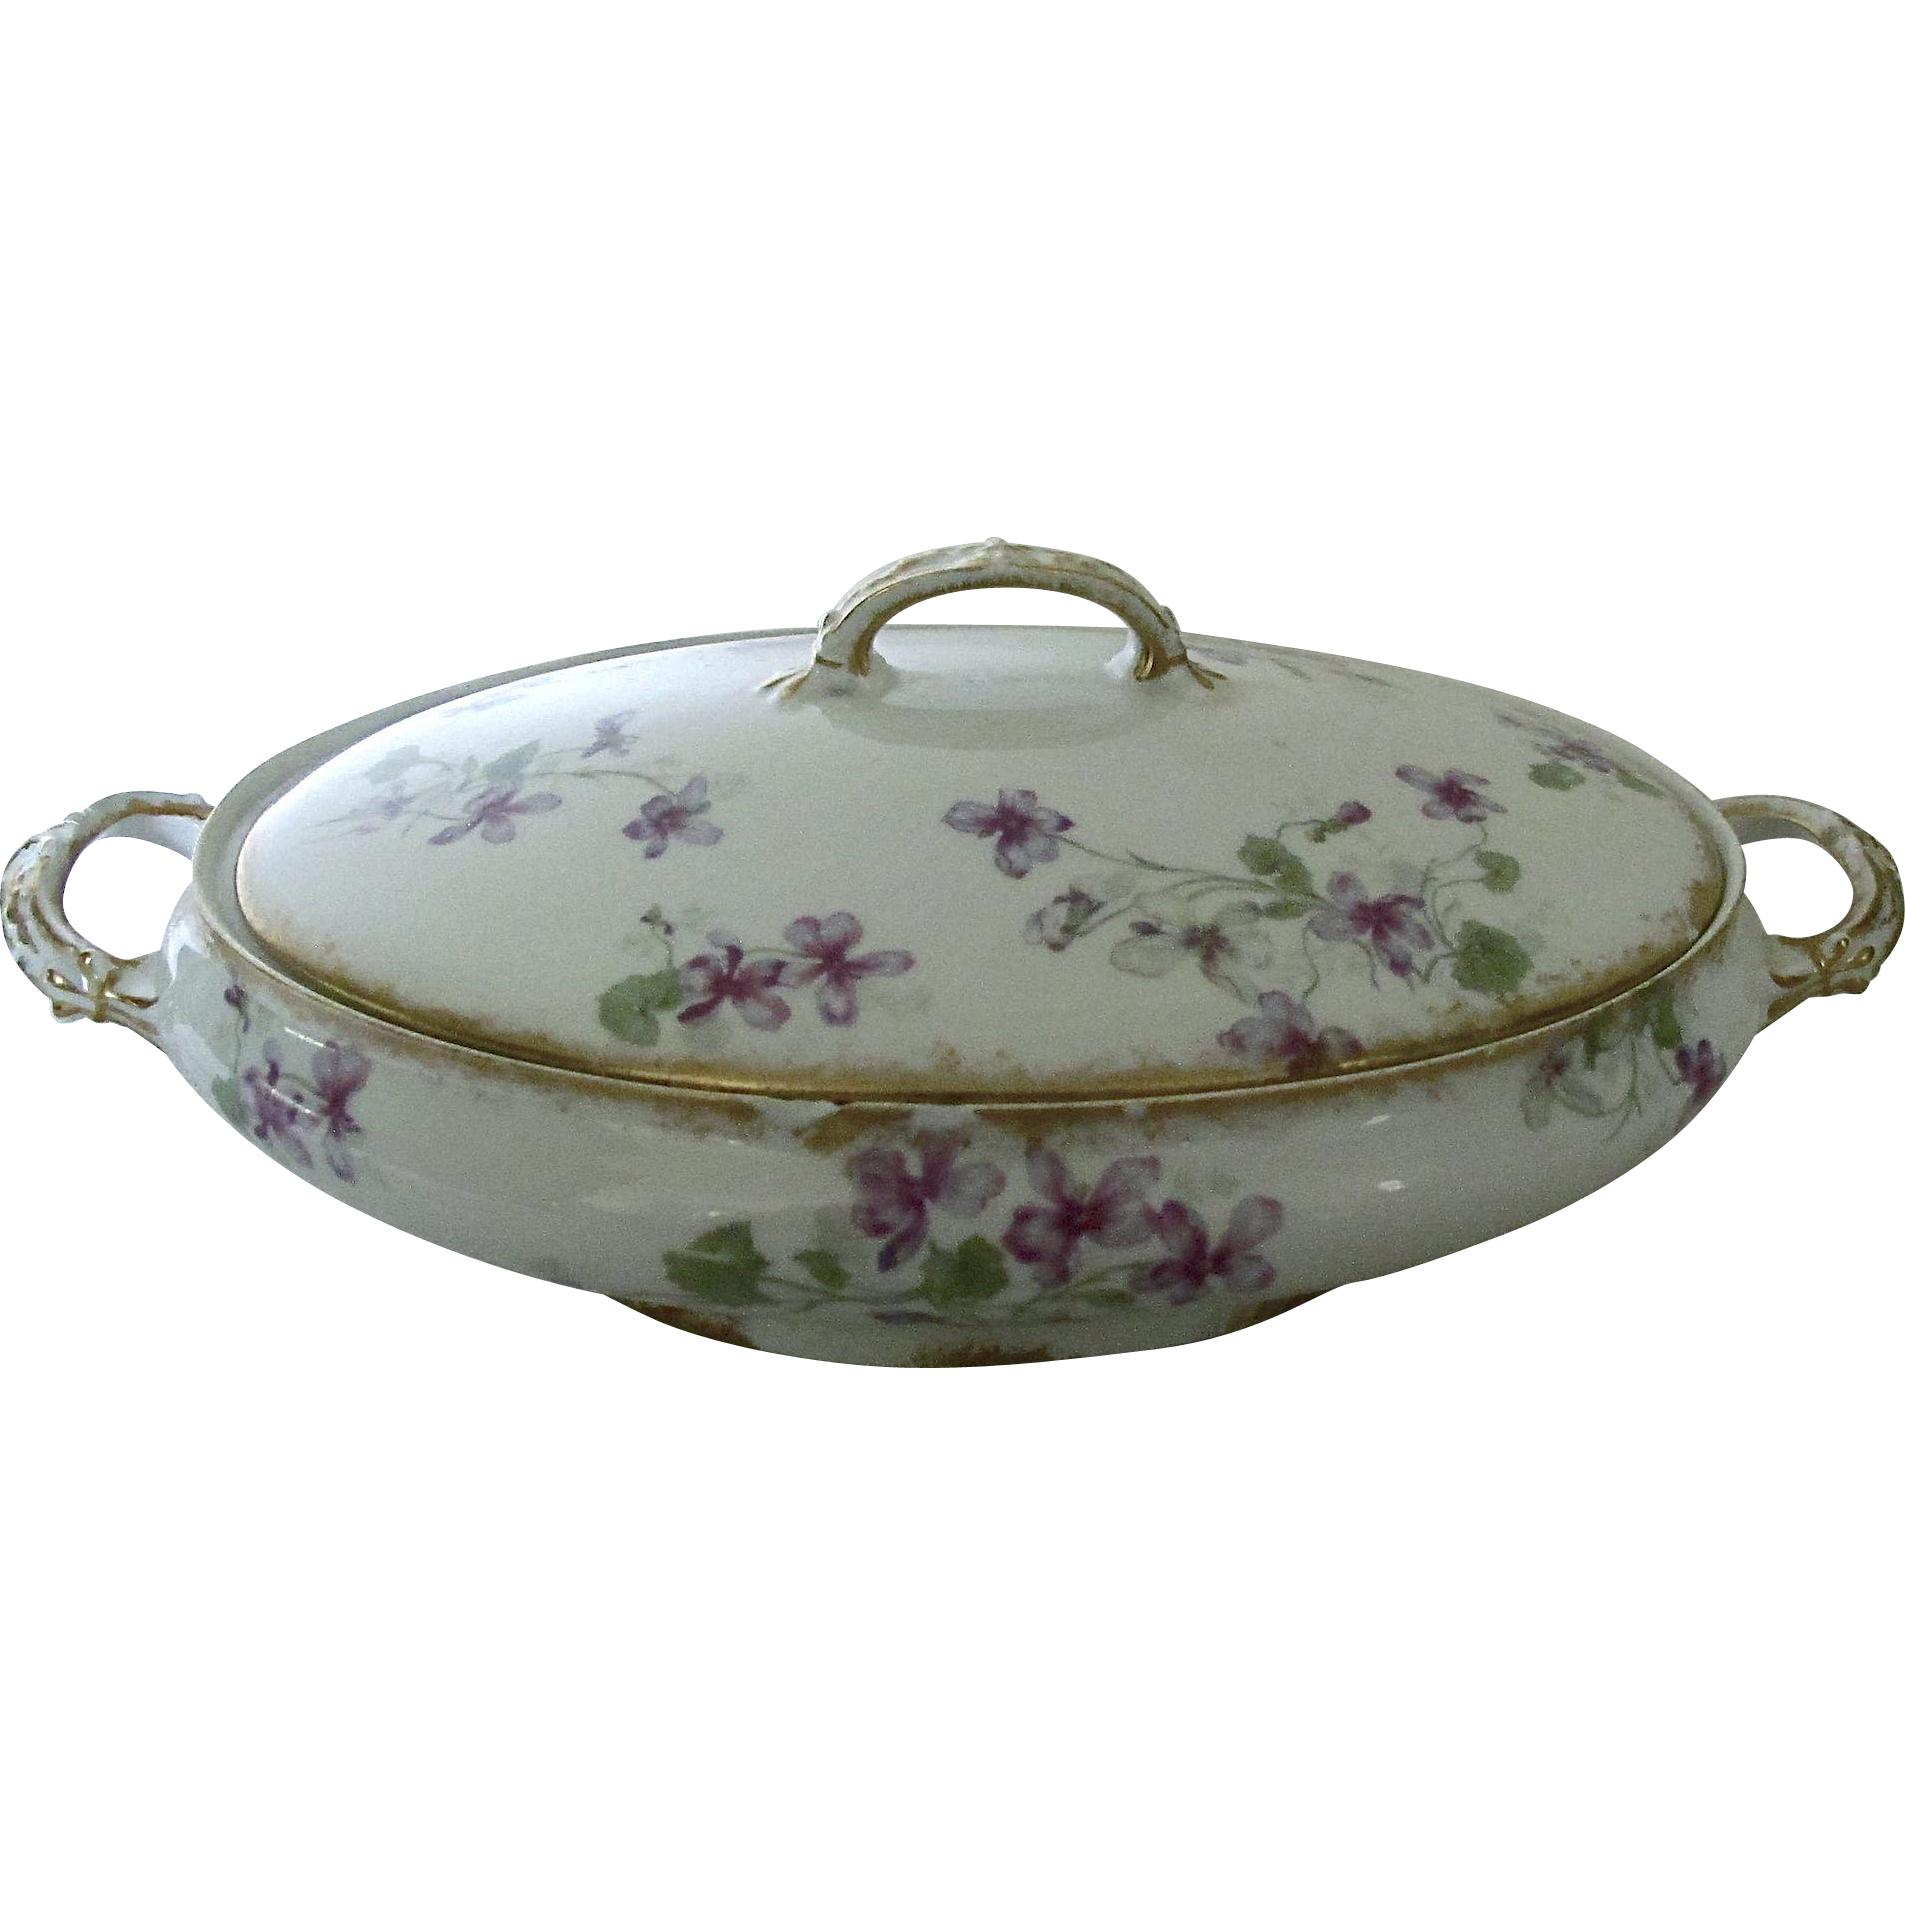 Charles Field Havilland Limoges Vegetable Tureen